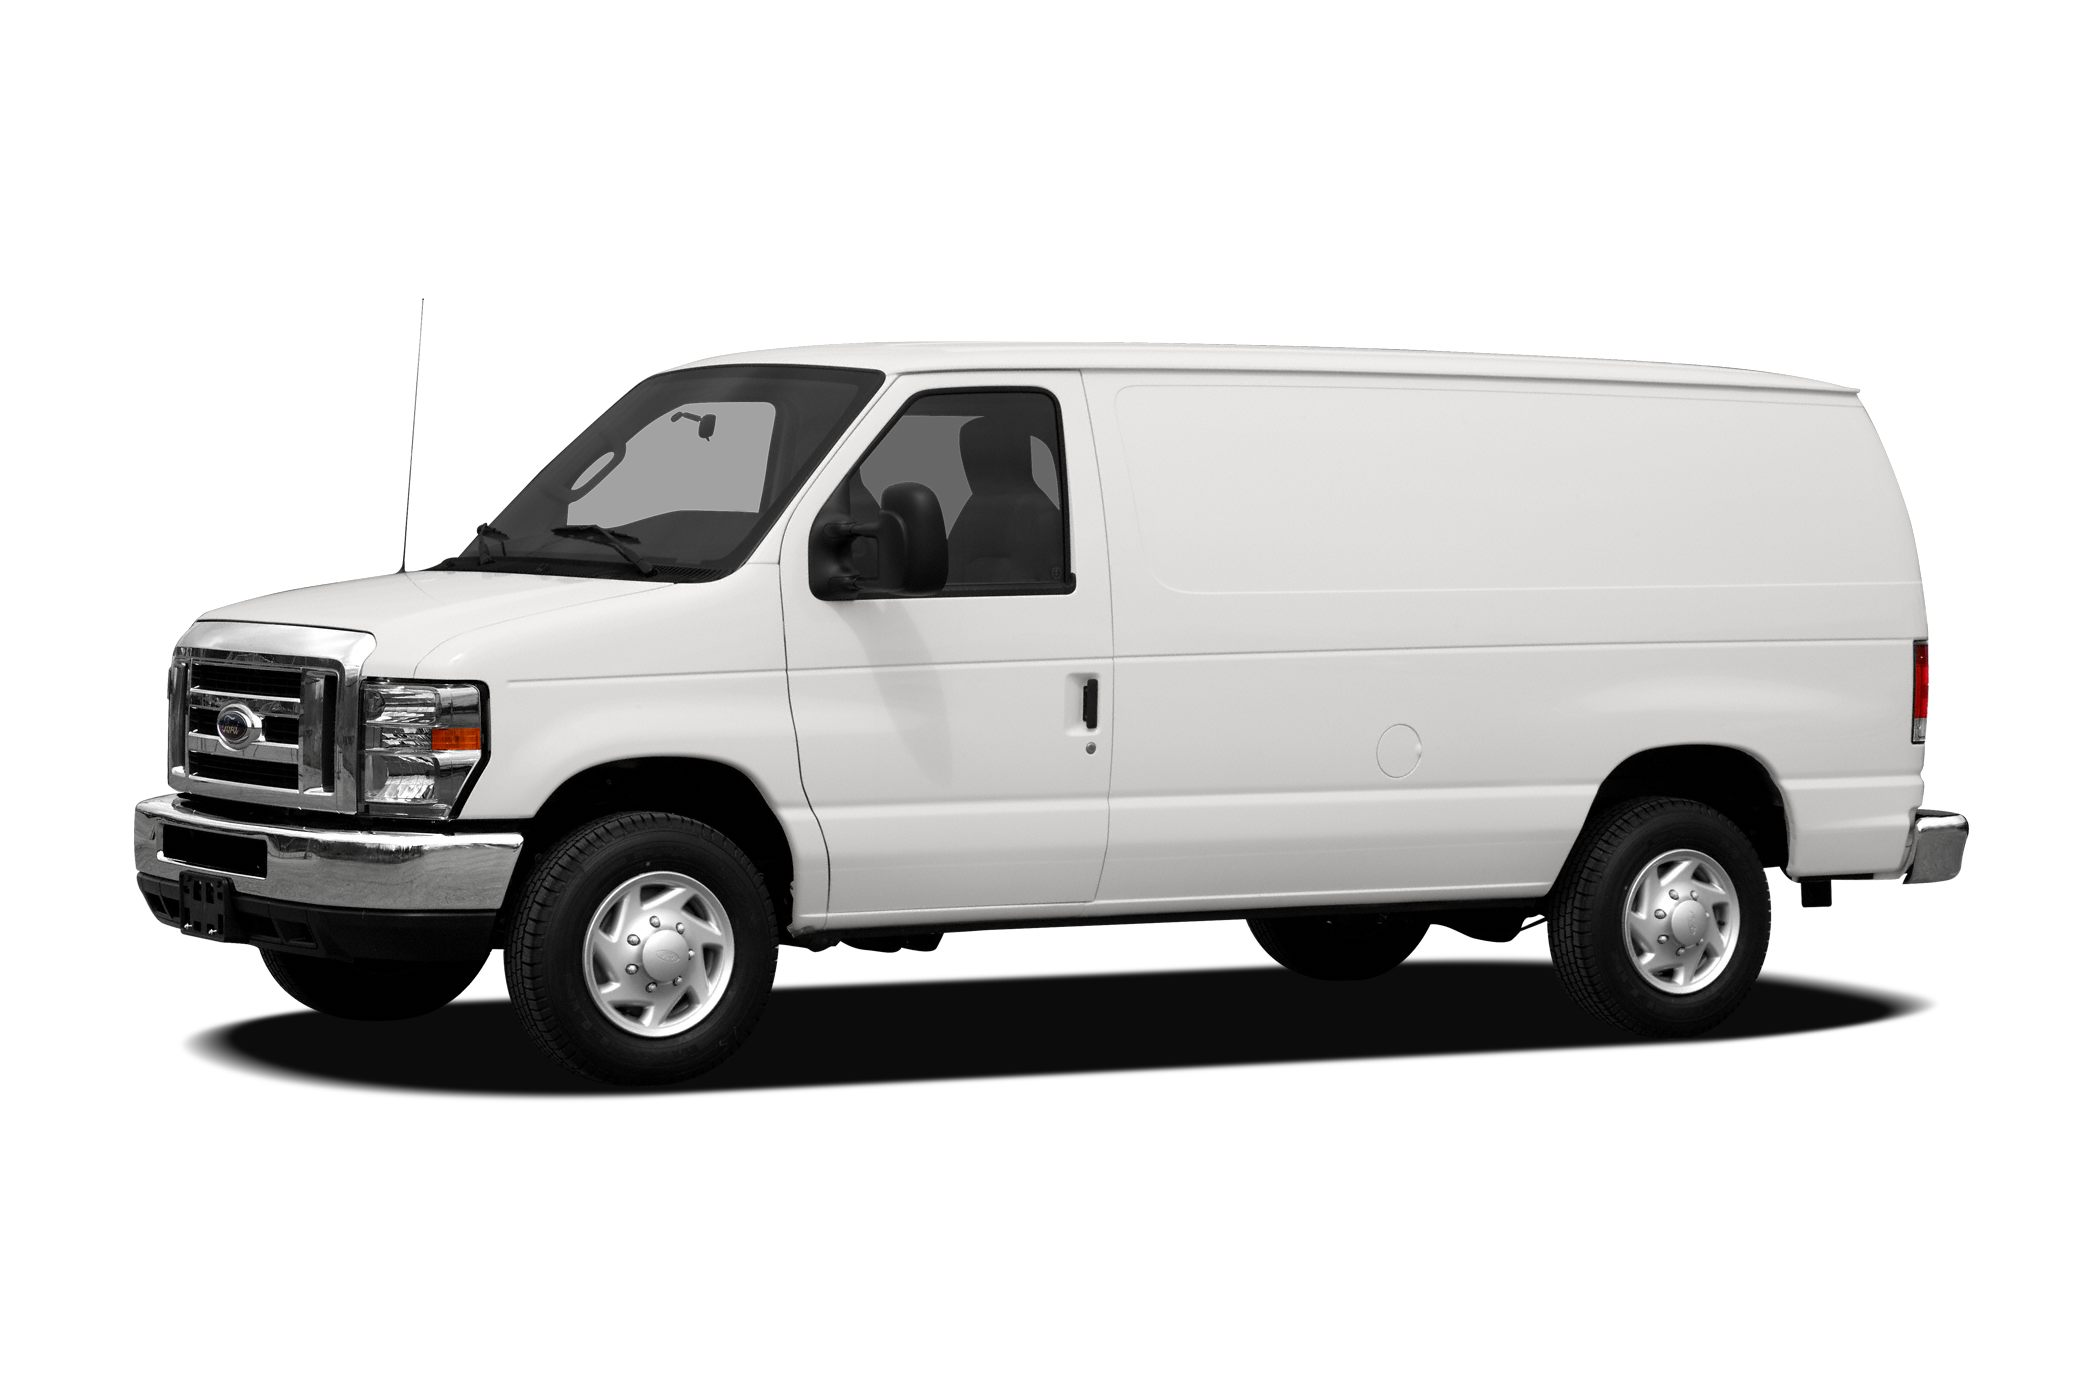 2009 Ford E350 Super Duty Cargo Van for sale in Doylestown for $0 with 132,401 miles